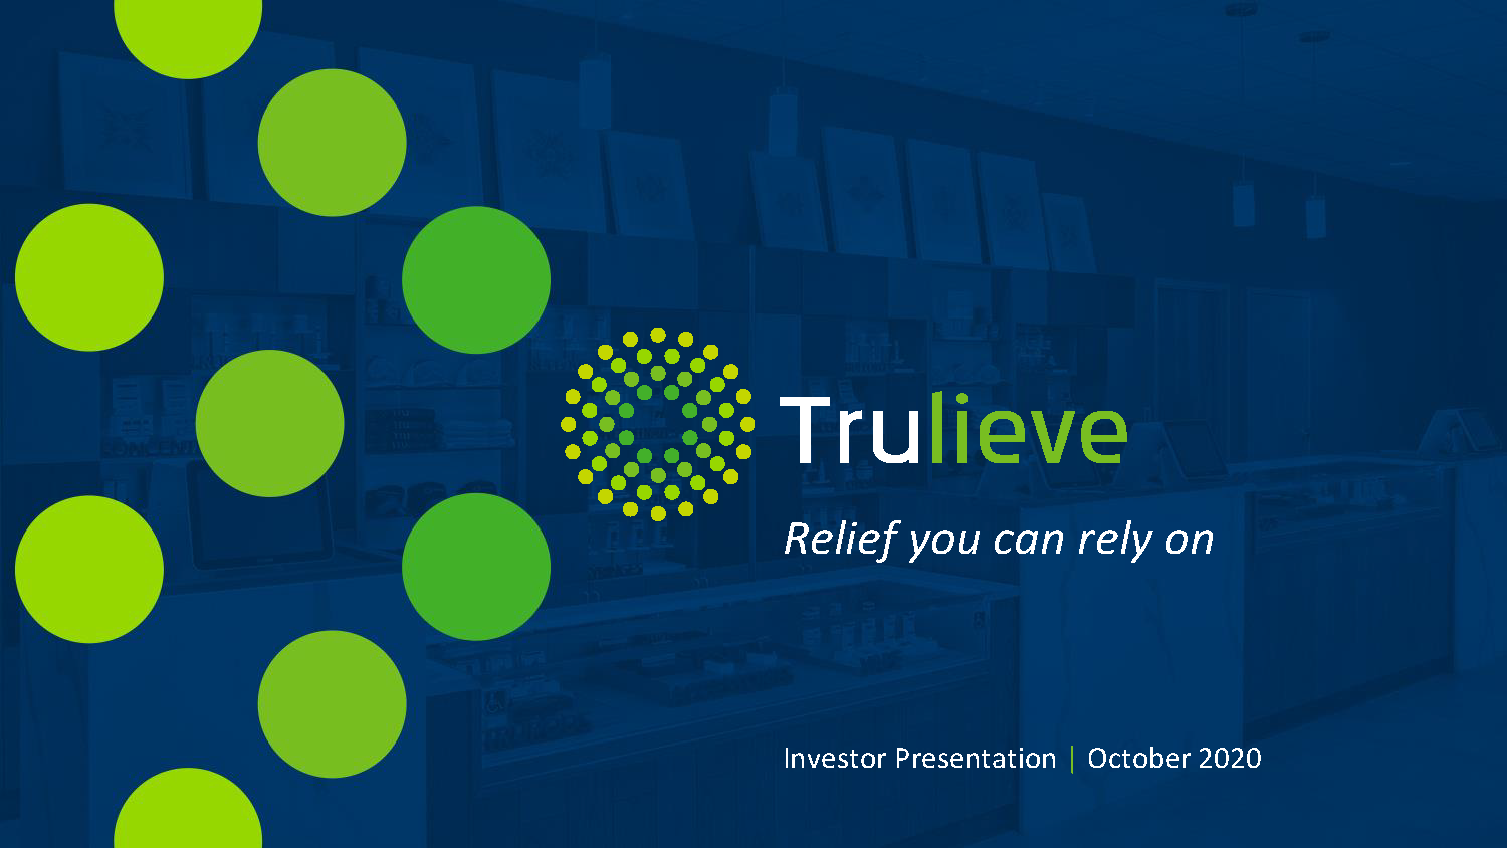 images/featured-companies/trulieve/deck/Trulieve IR Deck Oct 2020_102420_Page_01.png